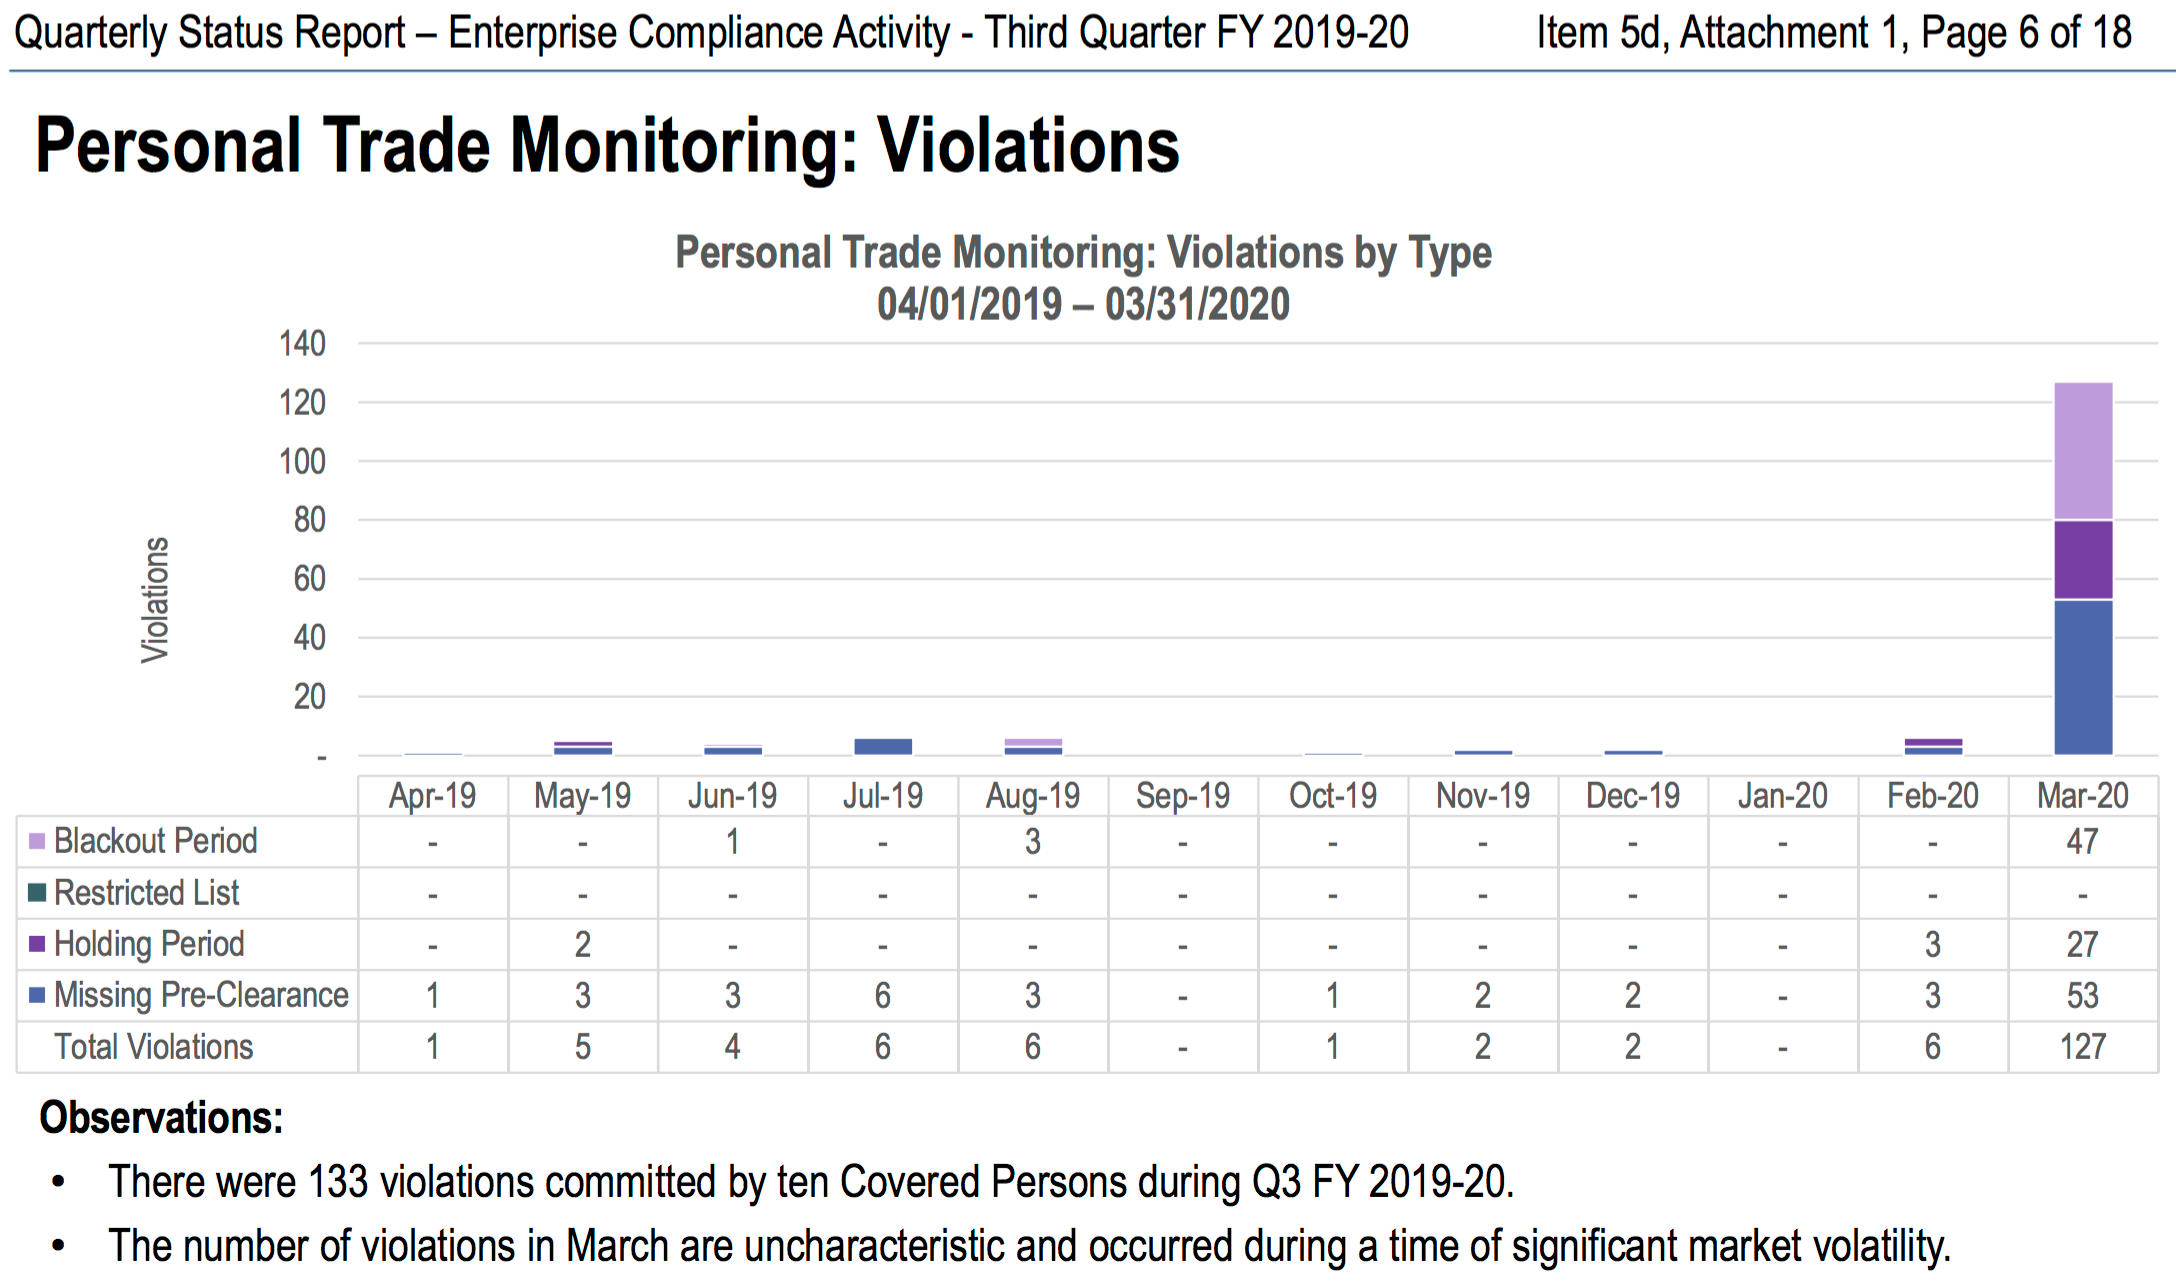 CalPERS Out of Control: Stunningly High Number of Personal Trading Violations, Yet Board Ignored the Misconduct. 2